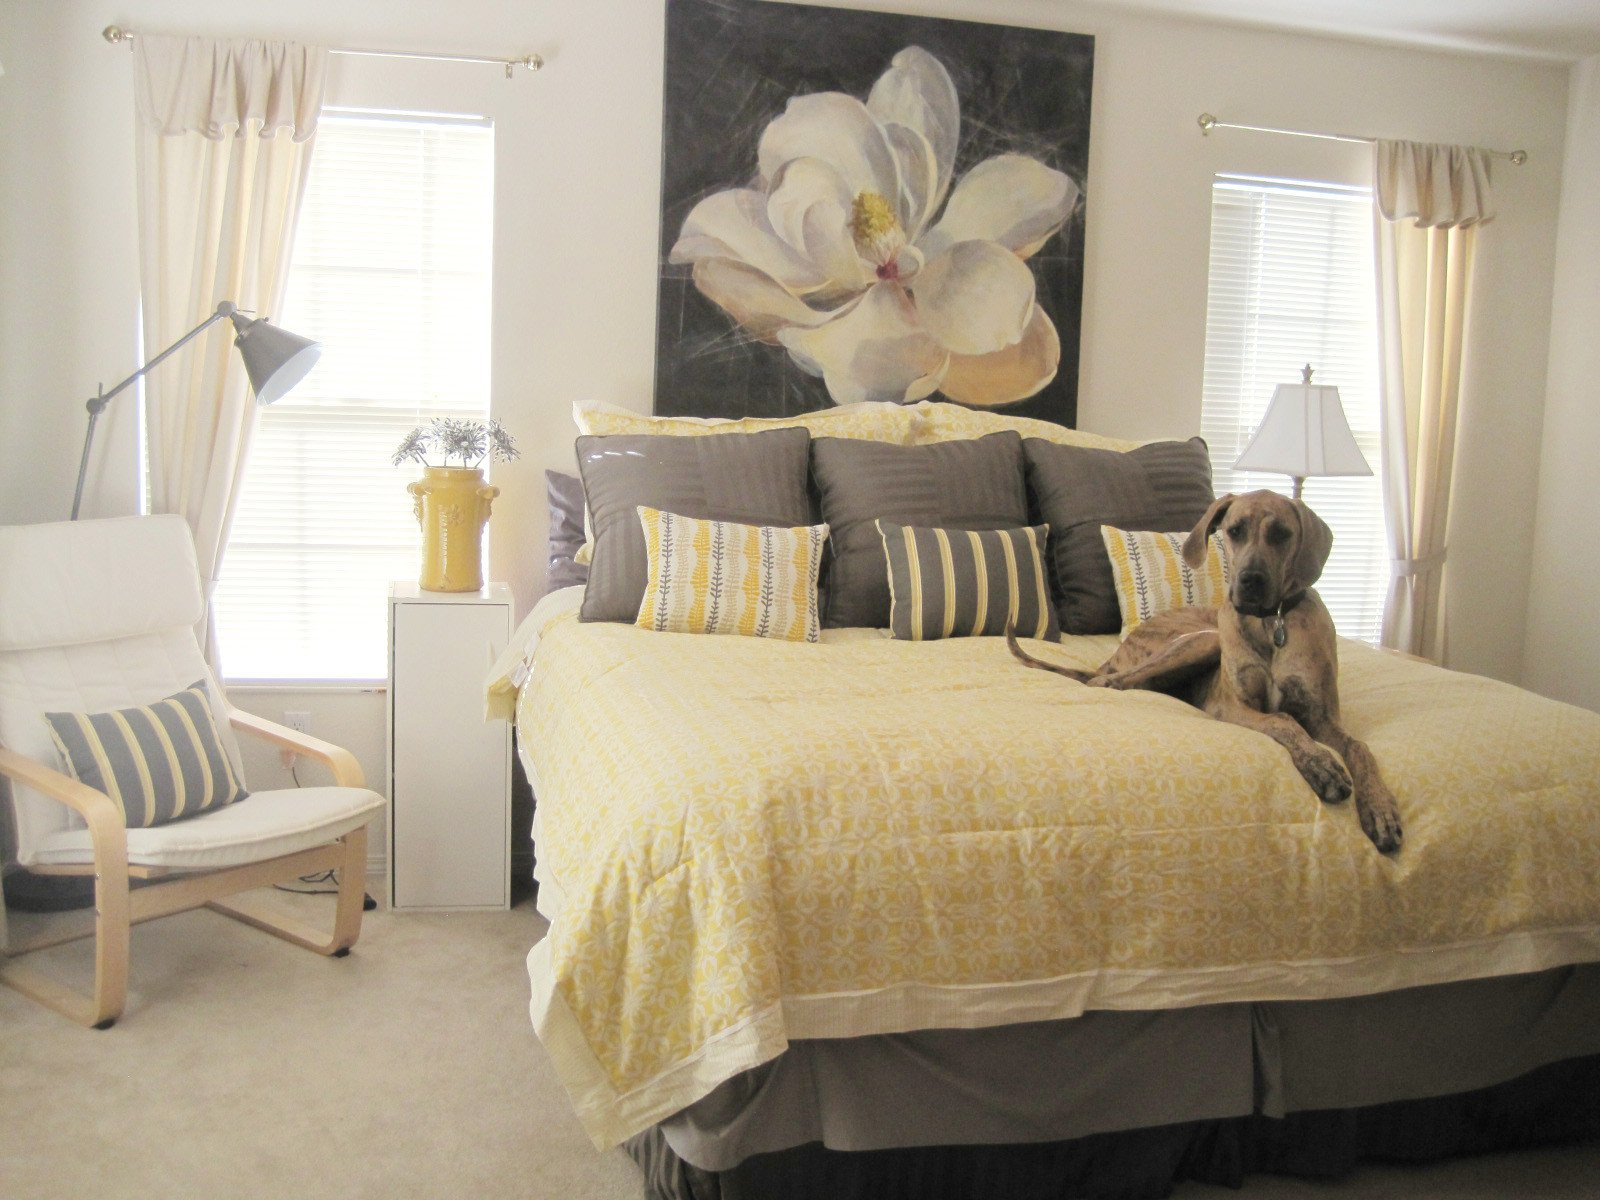 Yellow and Gray Home Decor Lovely Yellow and Gray Bedroom Decor – Neutral Meets Cheerful Nuance